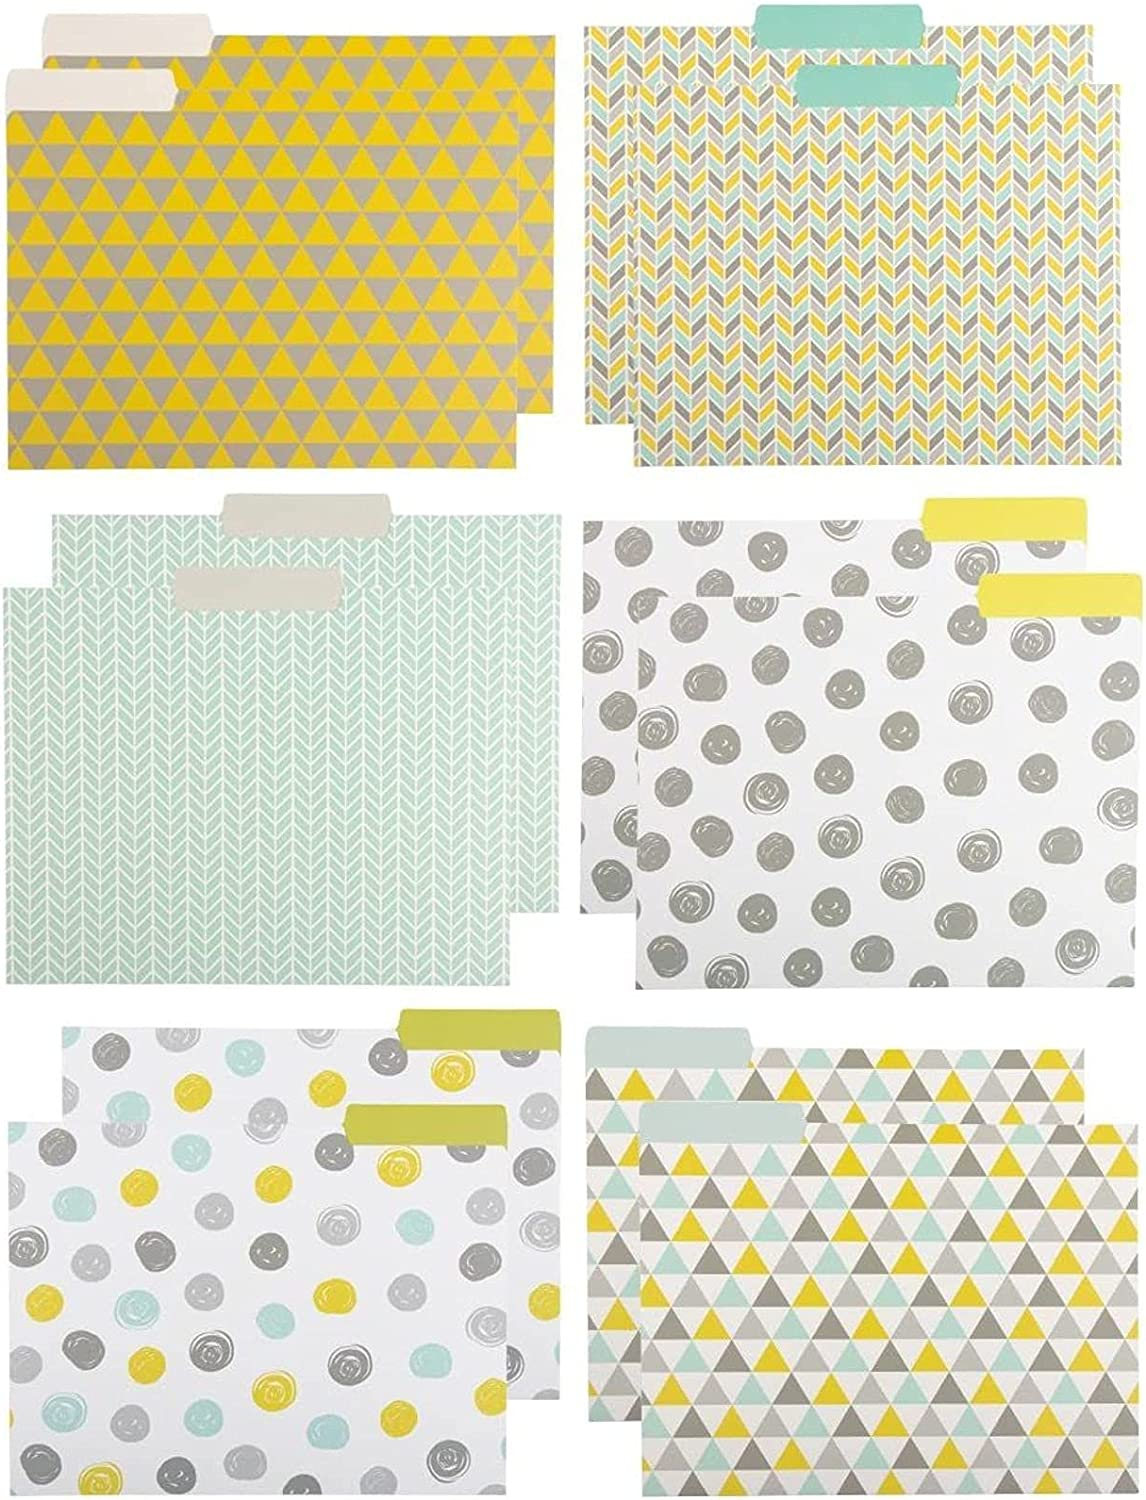 File Folders with Geometric Design, Letter Size (9.5 x 11.5 Inches, 12 Pack)